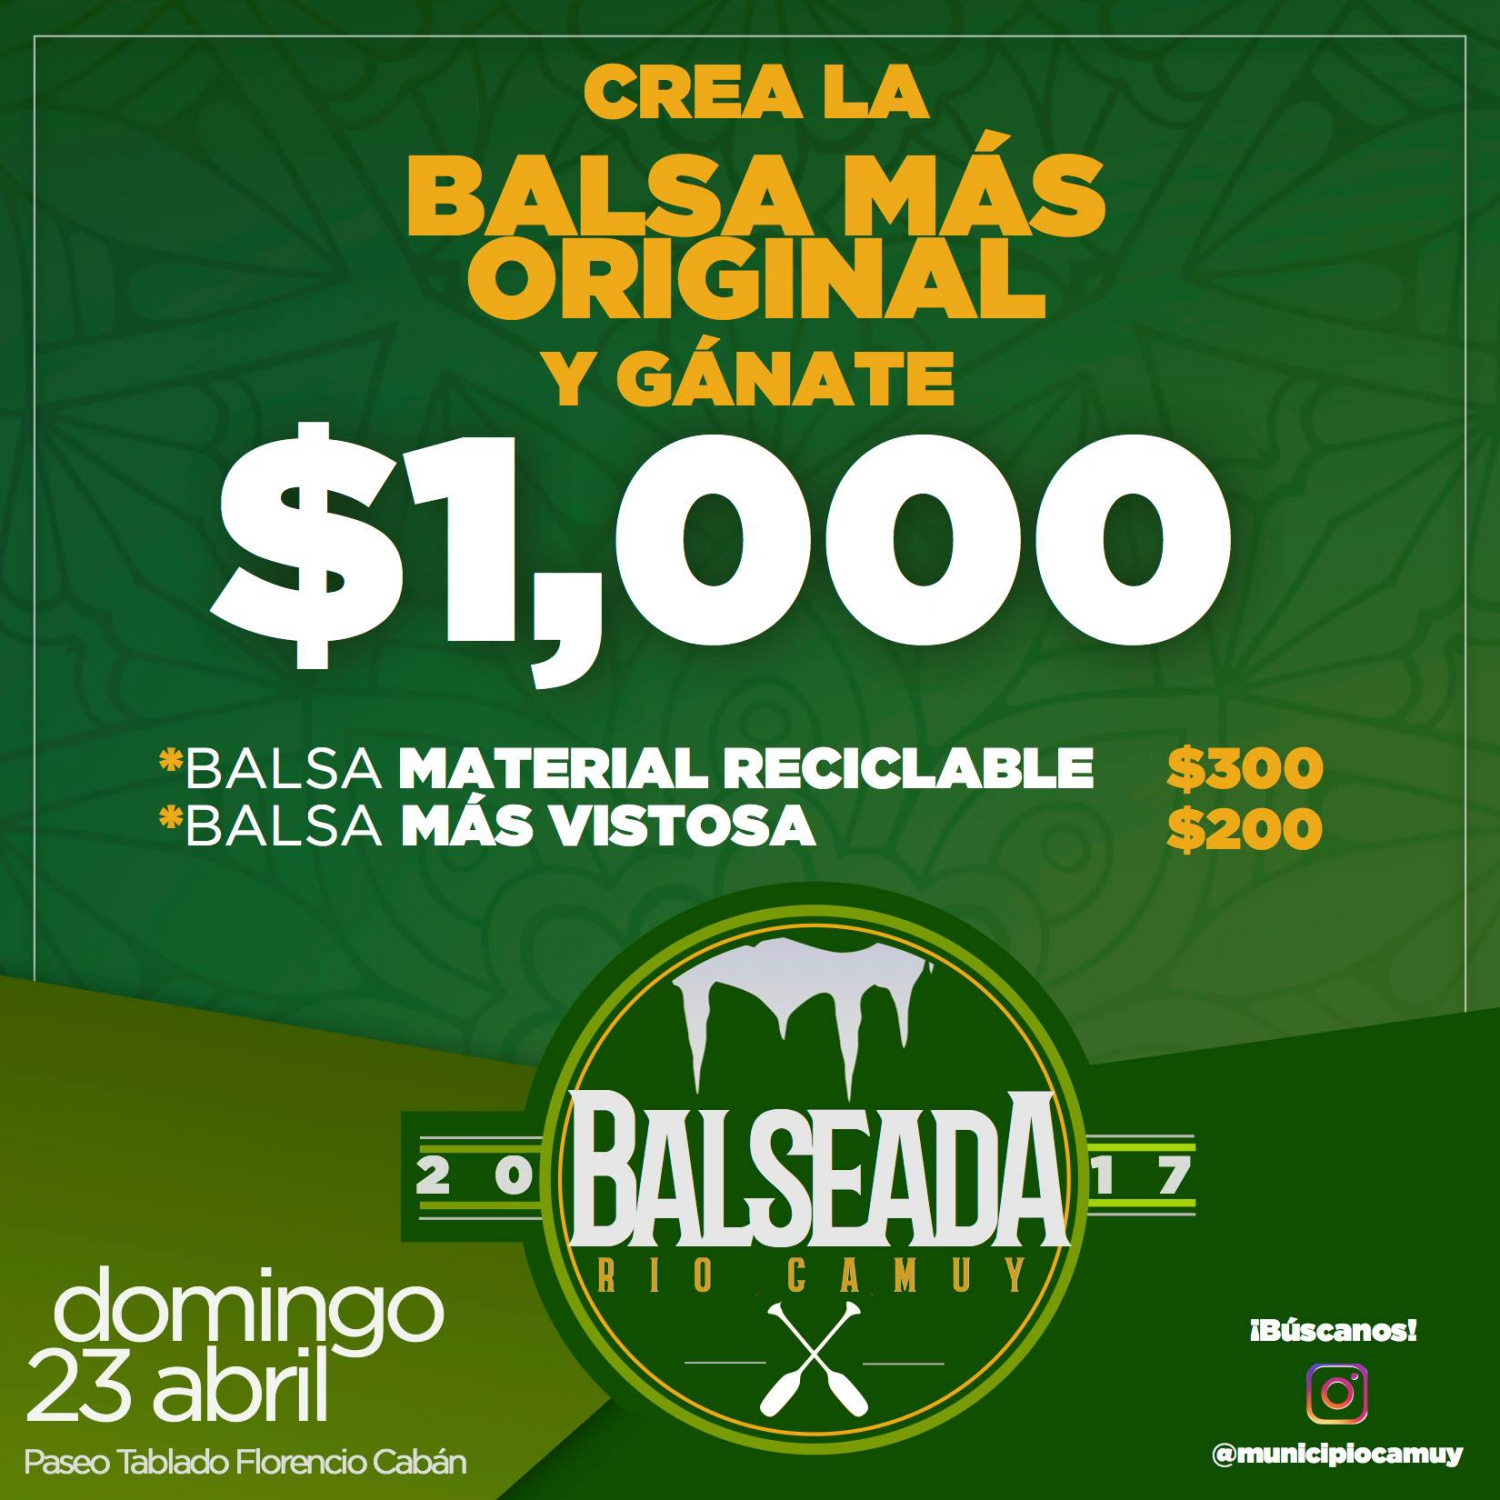 balseada 2017 prize money